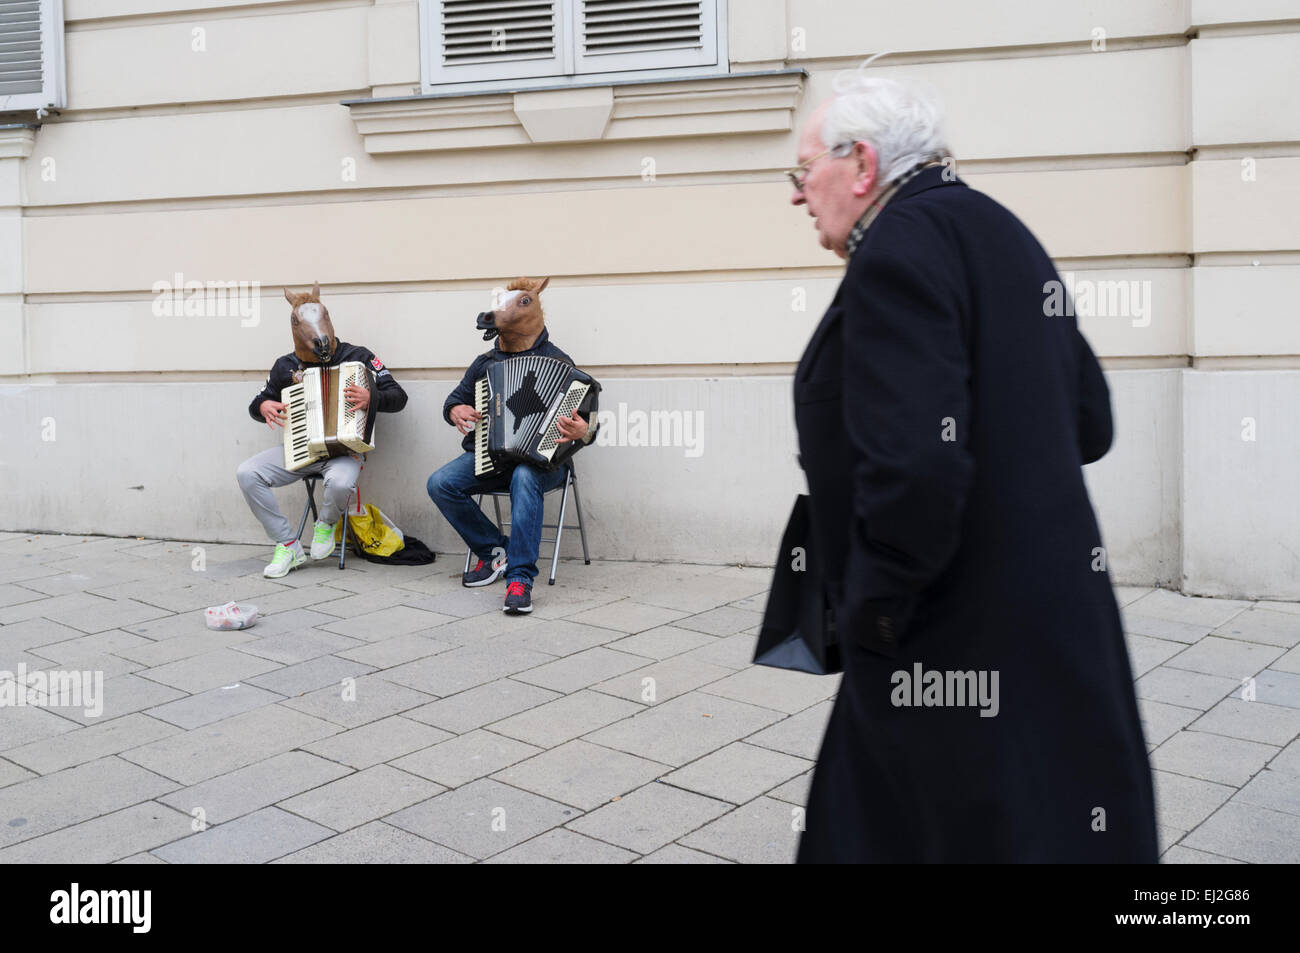 Buskers with horse heads playing accordion. Vienna, Austria - Stock Image